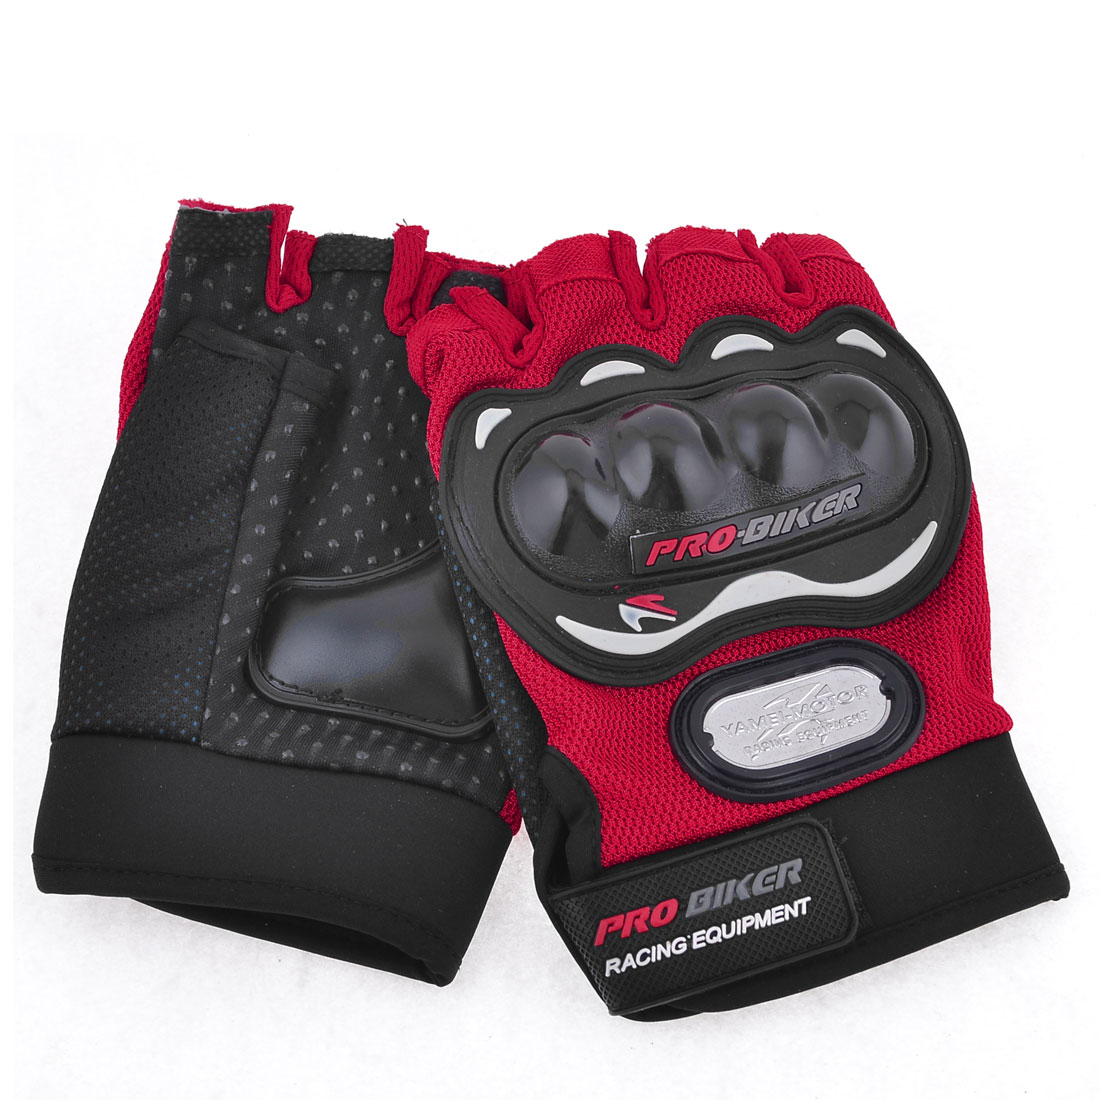 Men Red Black Antislip Wear Resistant Palm Design Half Finger Sports Gloves Pair